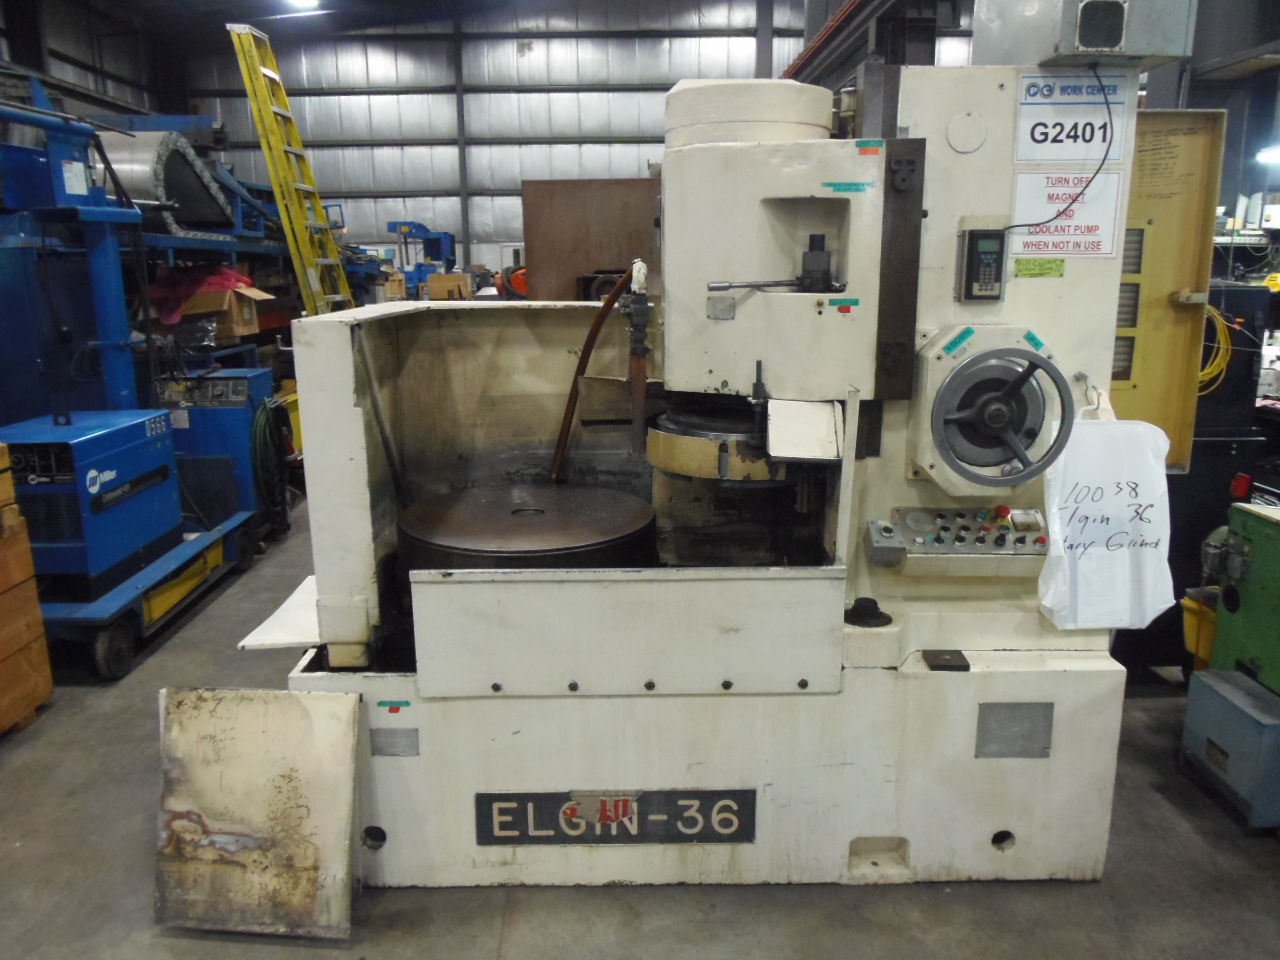 "30"" ELGIN VERTICAL SPINDLE ROTARY SURFACE GRINDER, MODEL 36, AUTO/MANUAL OPERATION, 32 HP, MAG CHUCK WITH DEMAG, COOLANT"